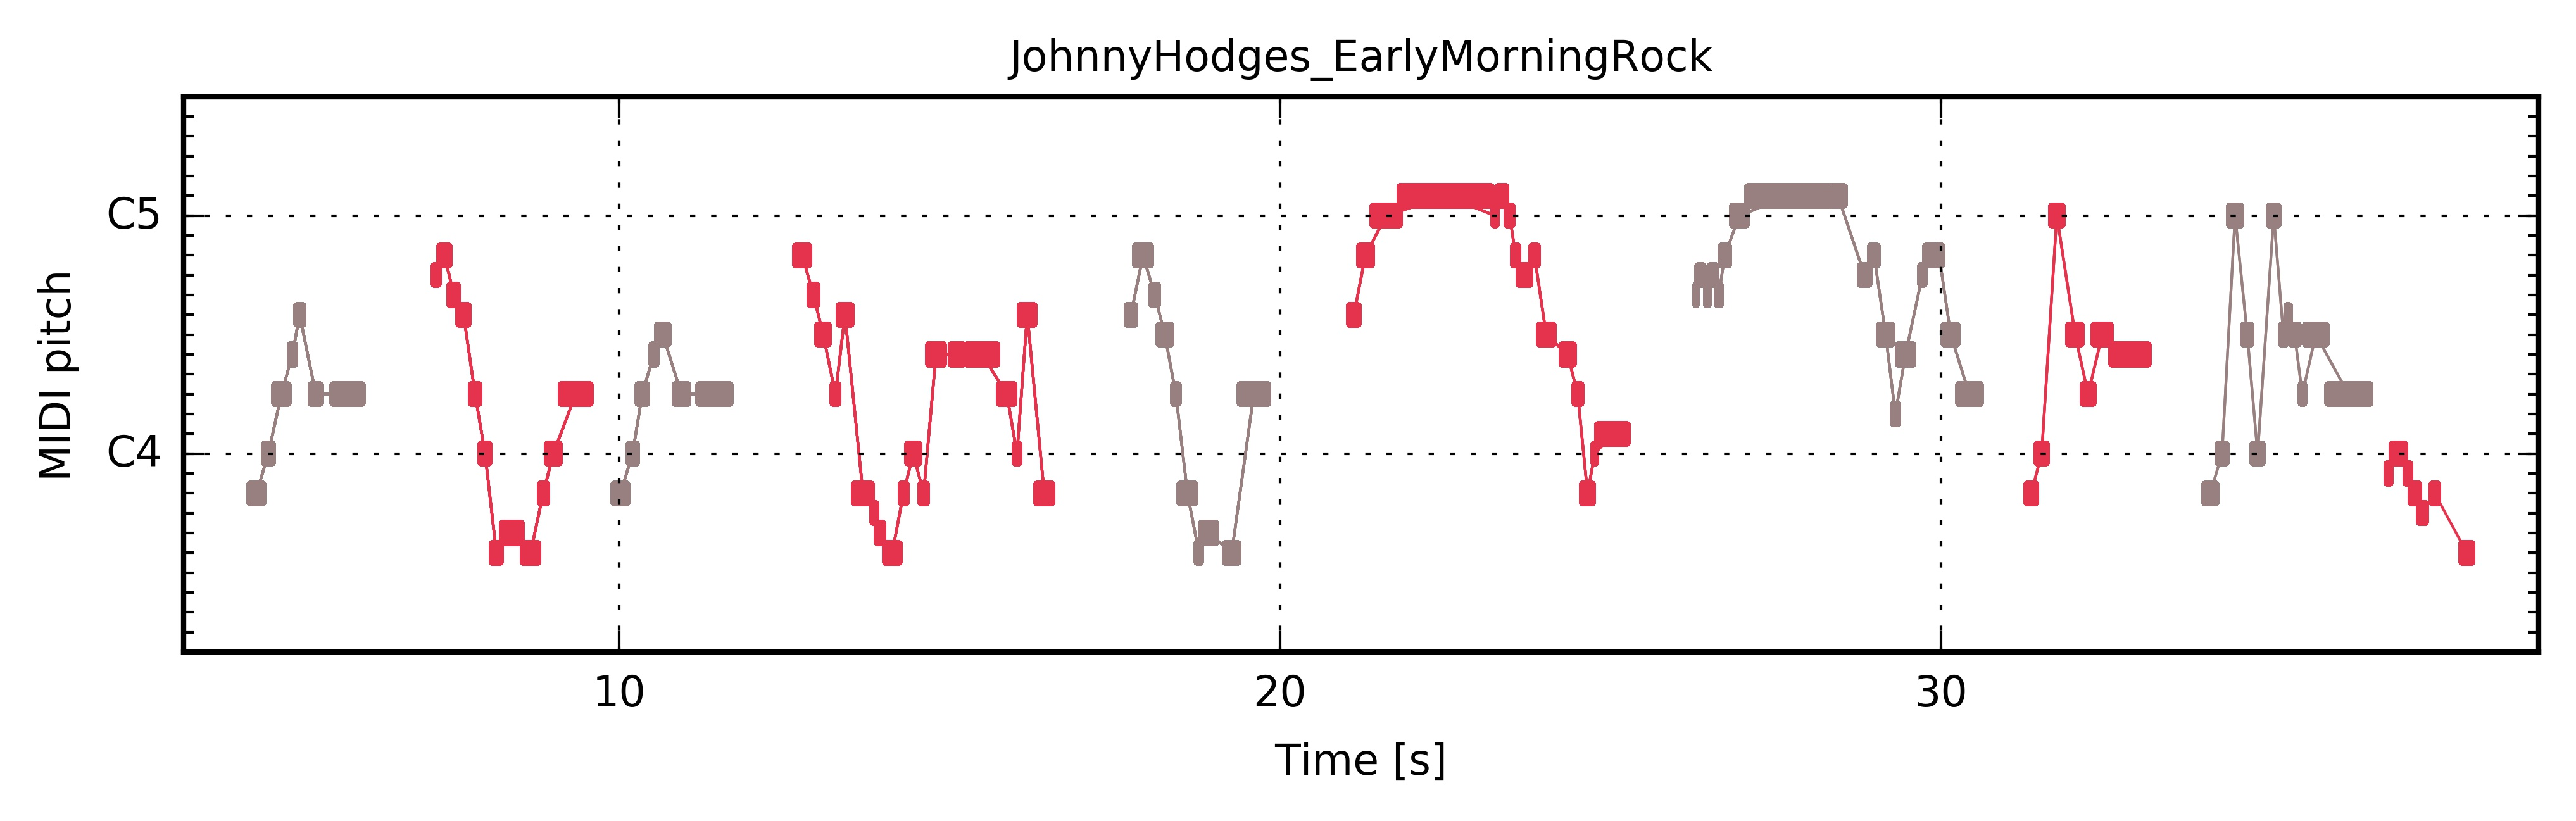 ../../_images/PianoRoll_JohnnyHodges_EarlyMorningRock.jpg